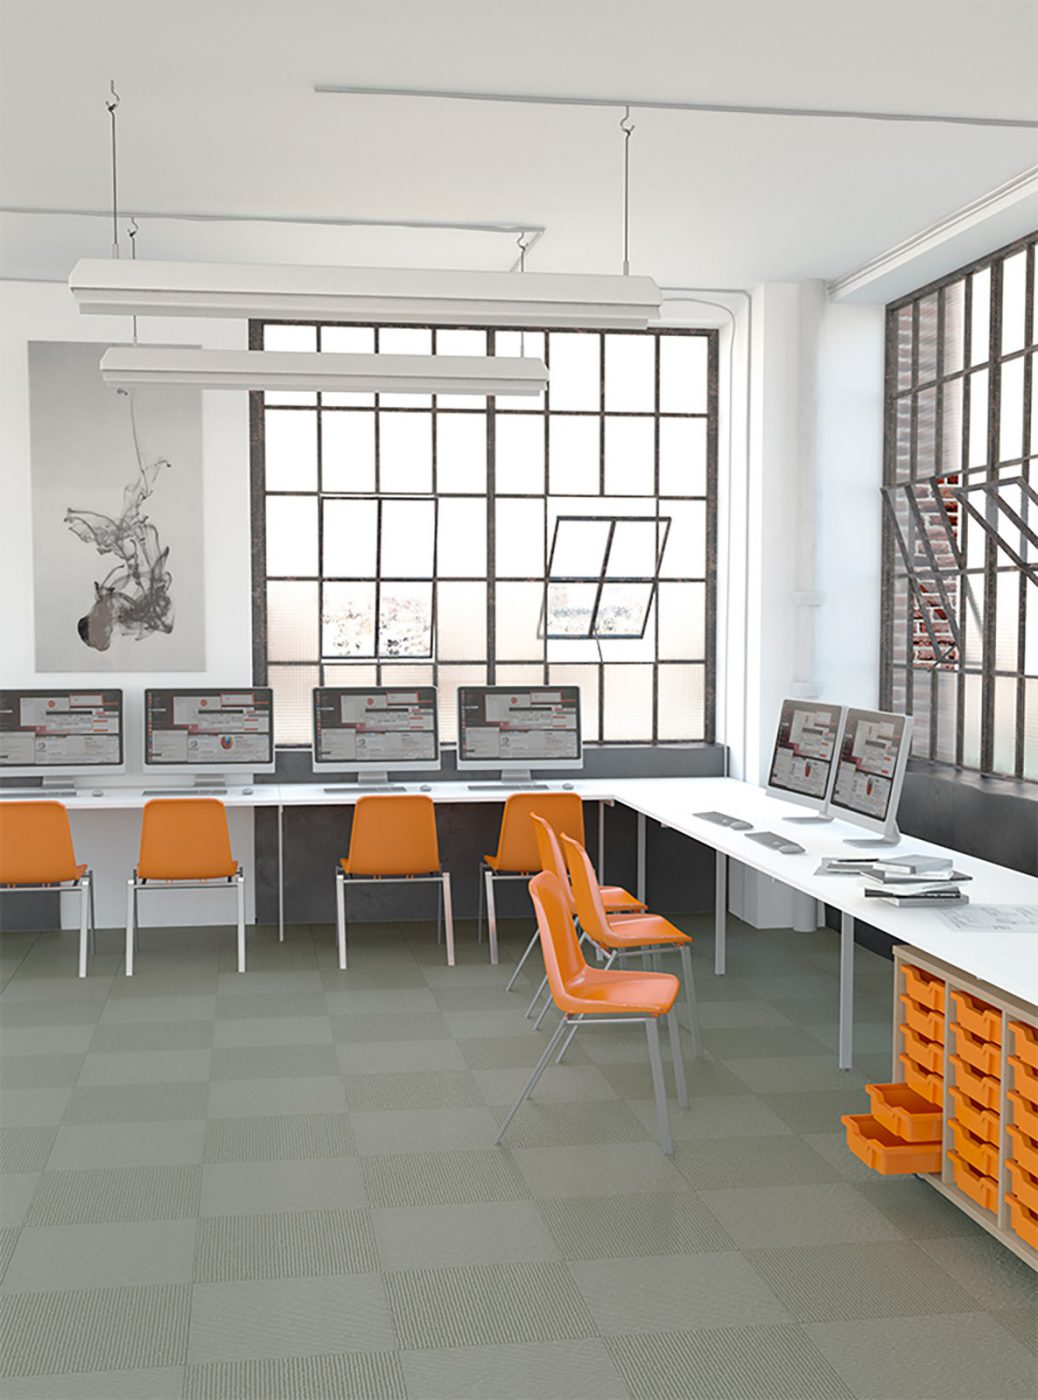 workbenches, school benches, school furniture, classroom furniture